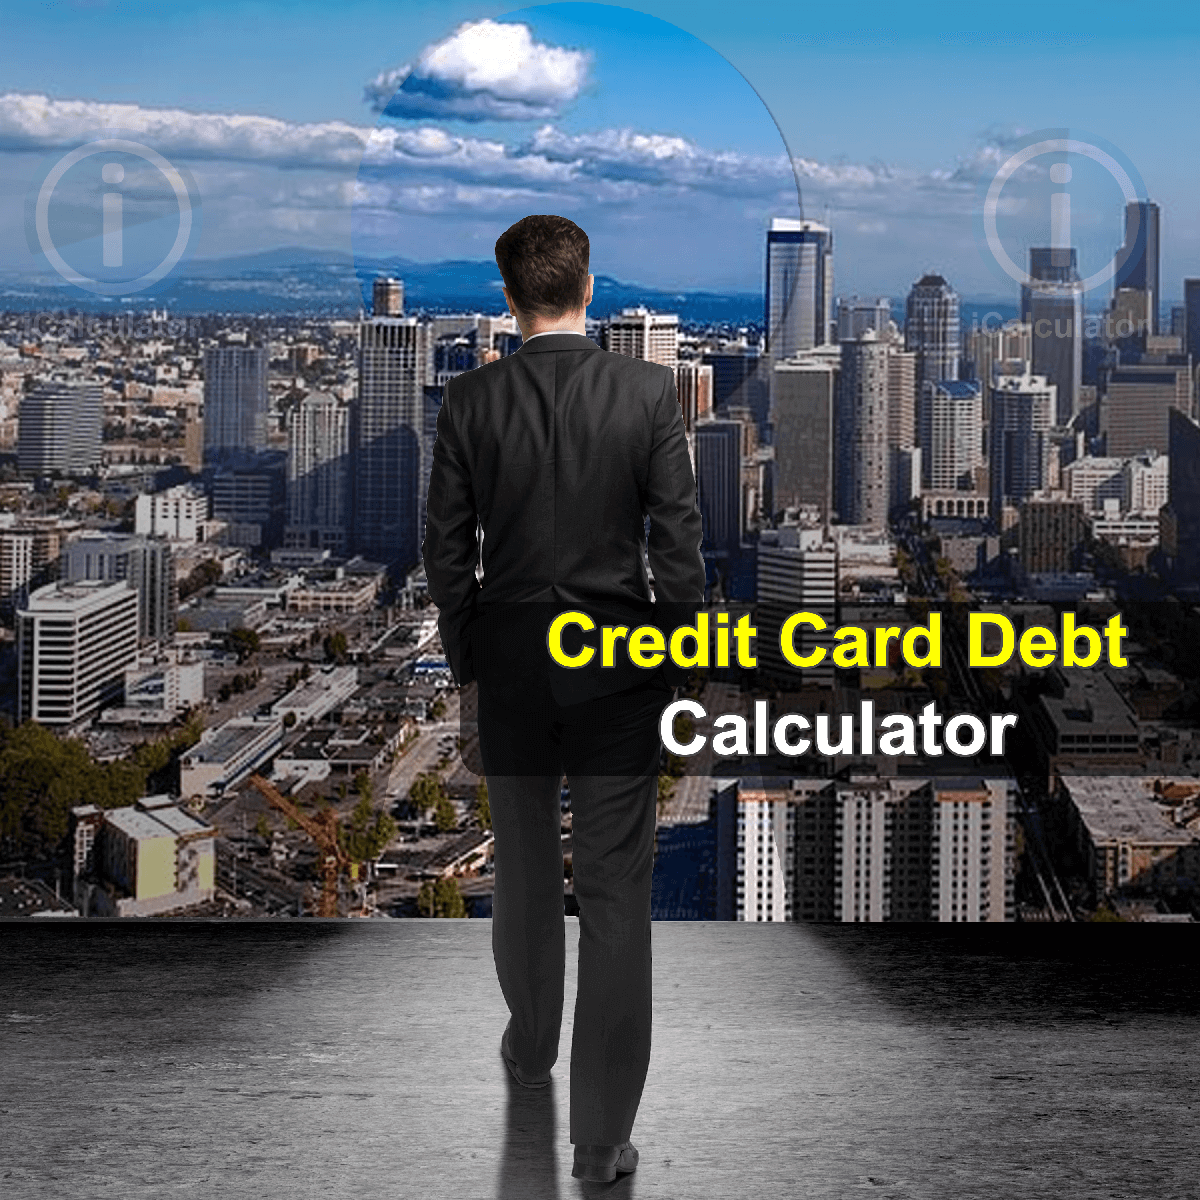 Credit Card Payoff Calculator. This image provides details of how to calculate credit card debt using a calculator and notepad. By using the credit card formula, the Credit Card Payoff Calculator provides a true calculation of the how to reduce your monthly credit card debt to lead a more stress free life.